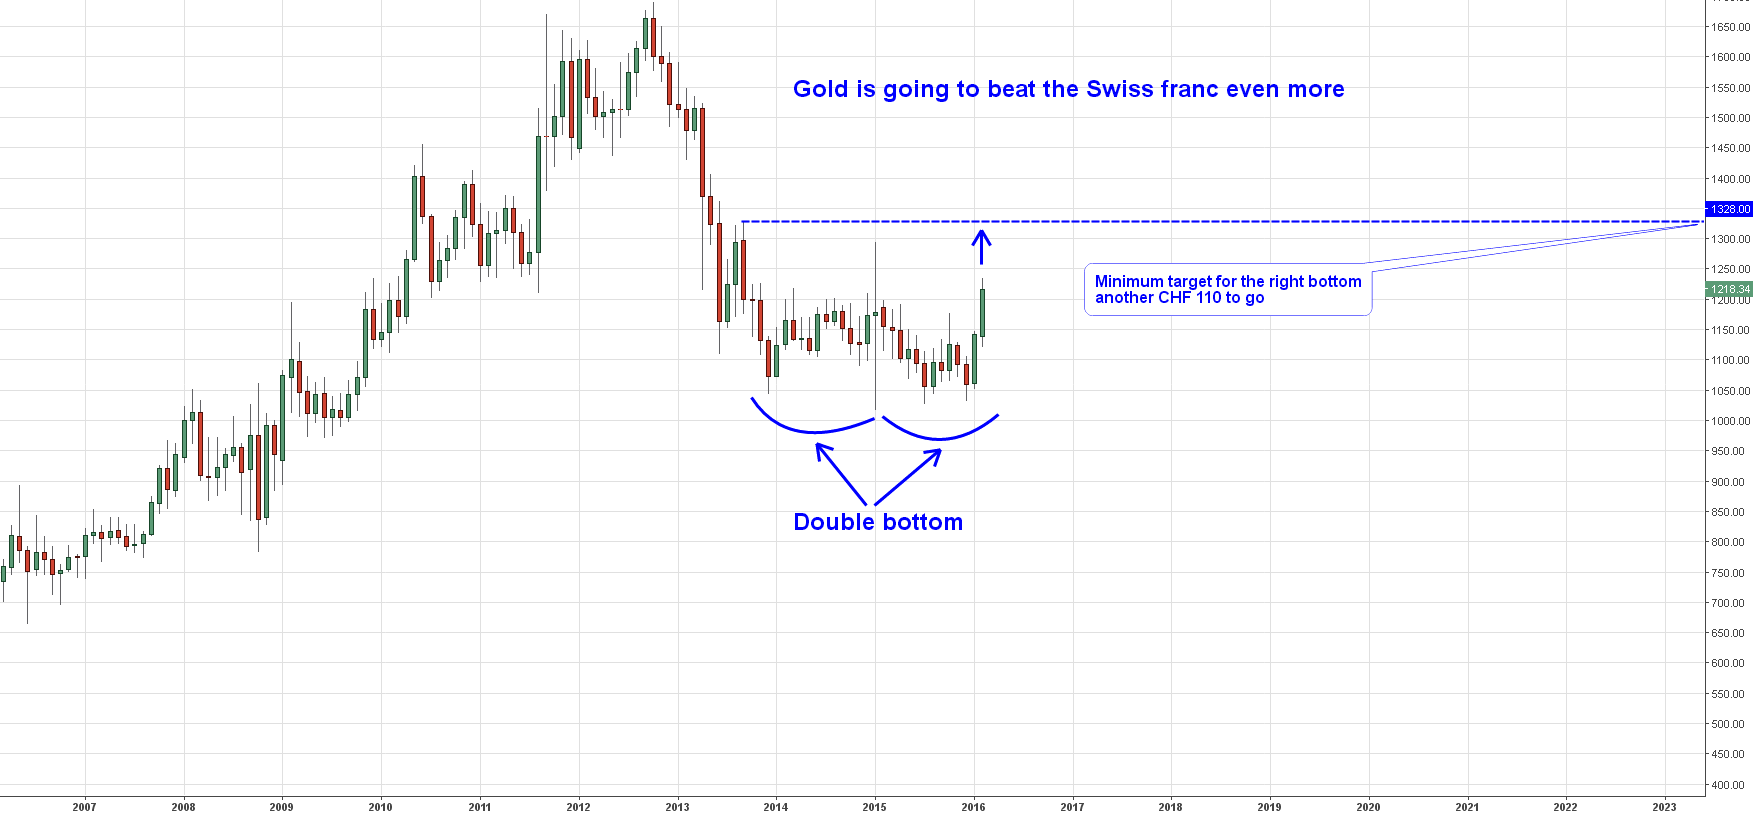 Gold/CHF Monthly Chart